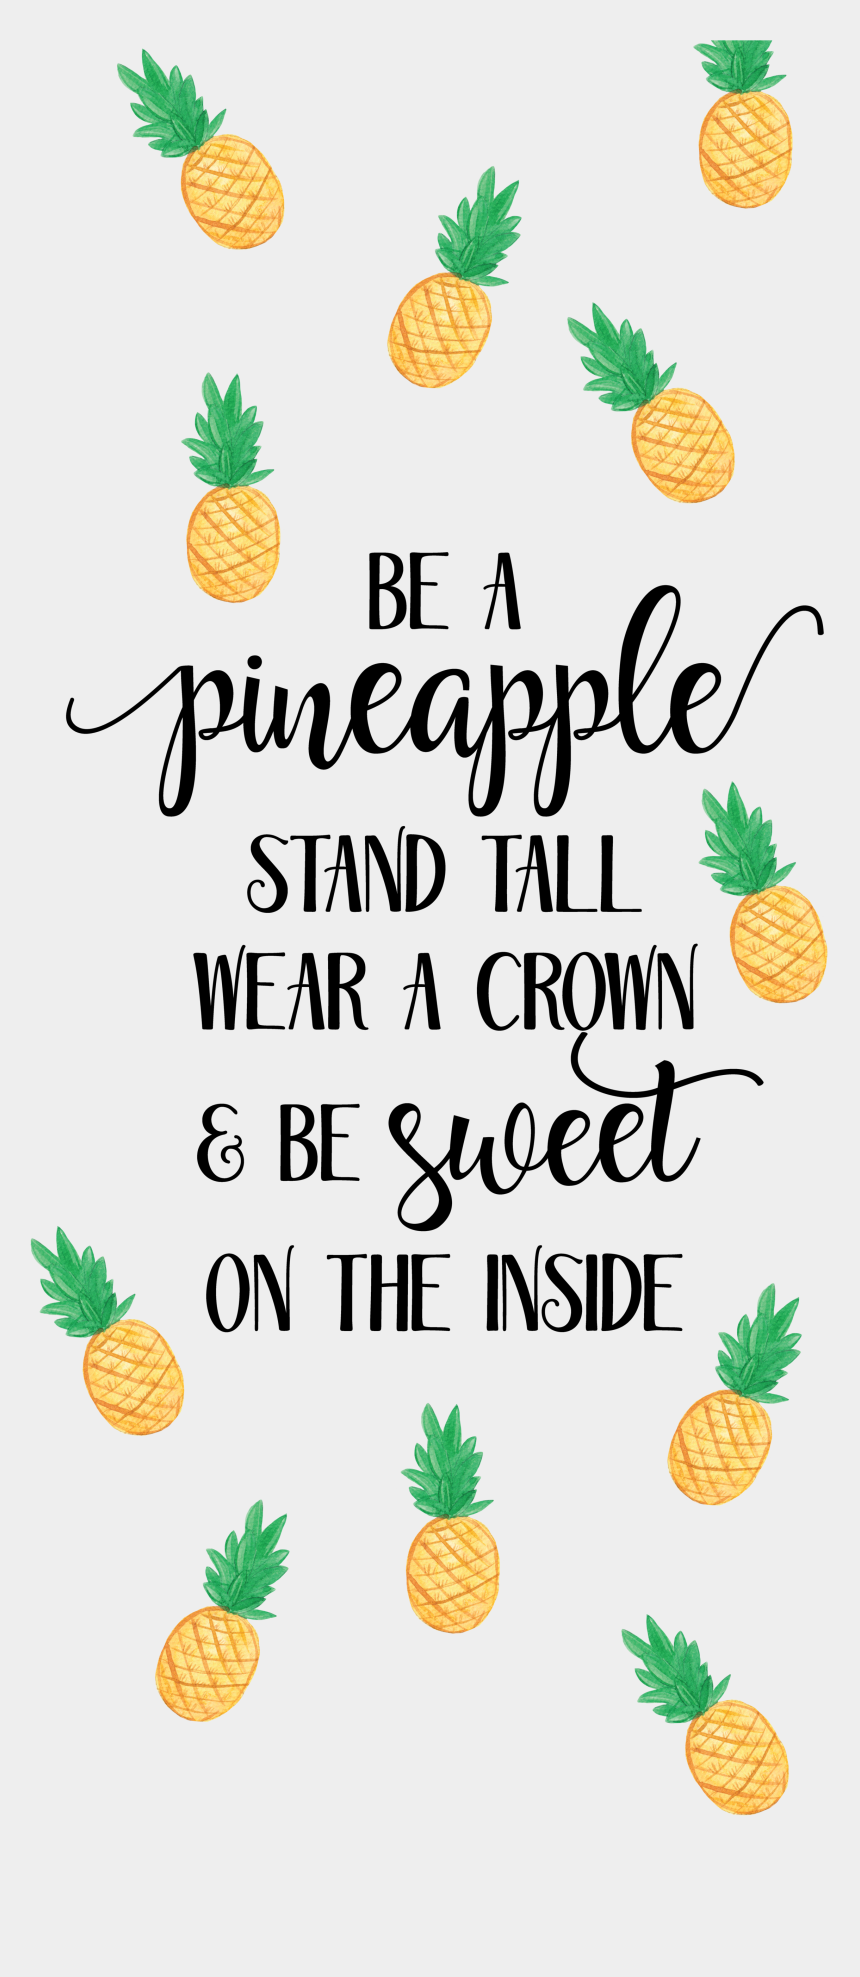 quote clipart, Cartoons - A - Pineapple Wallpaper Quotes